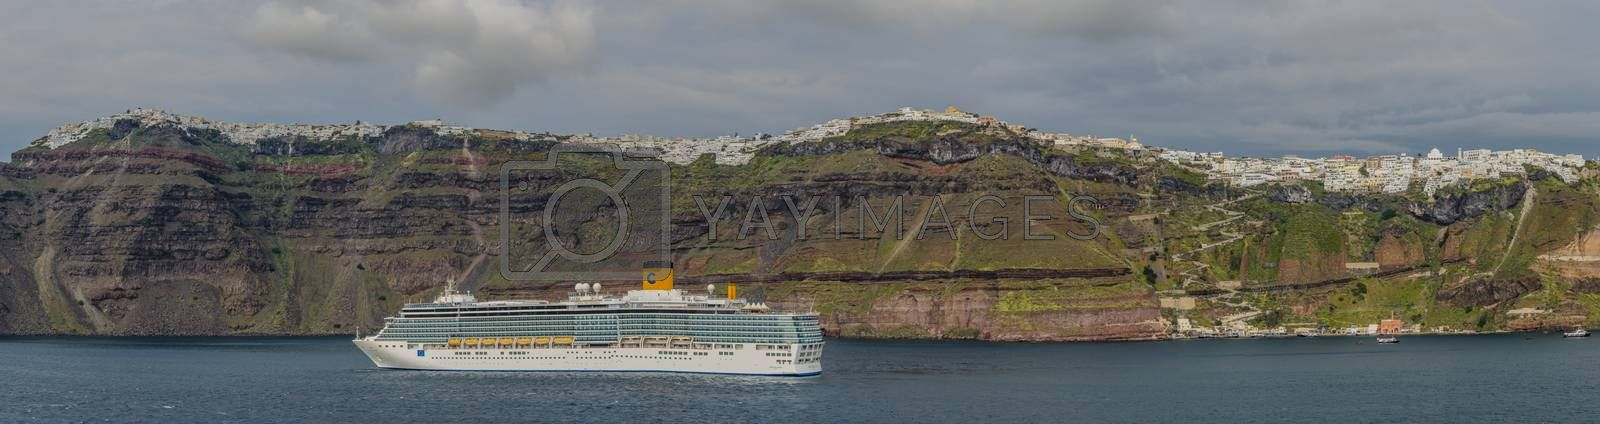 cruise ship in Santorini panorama view